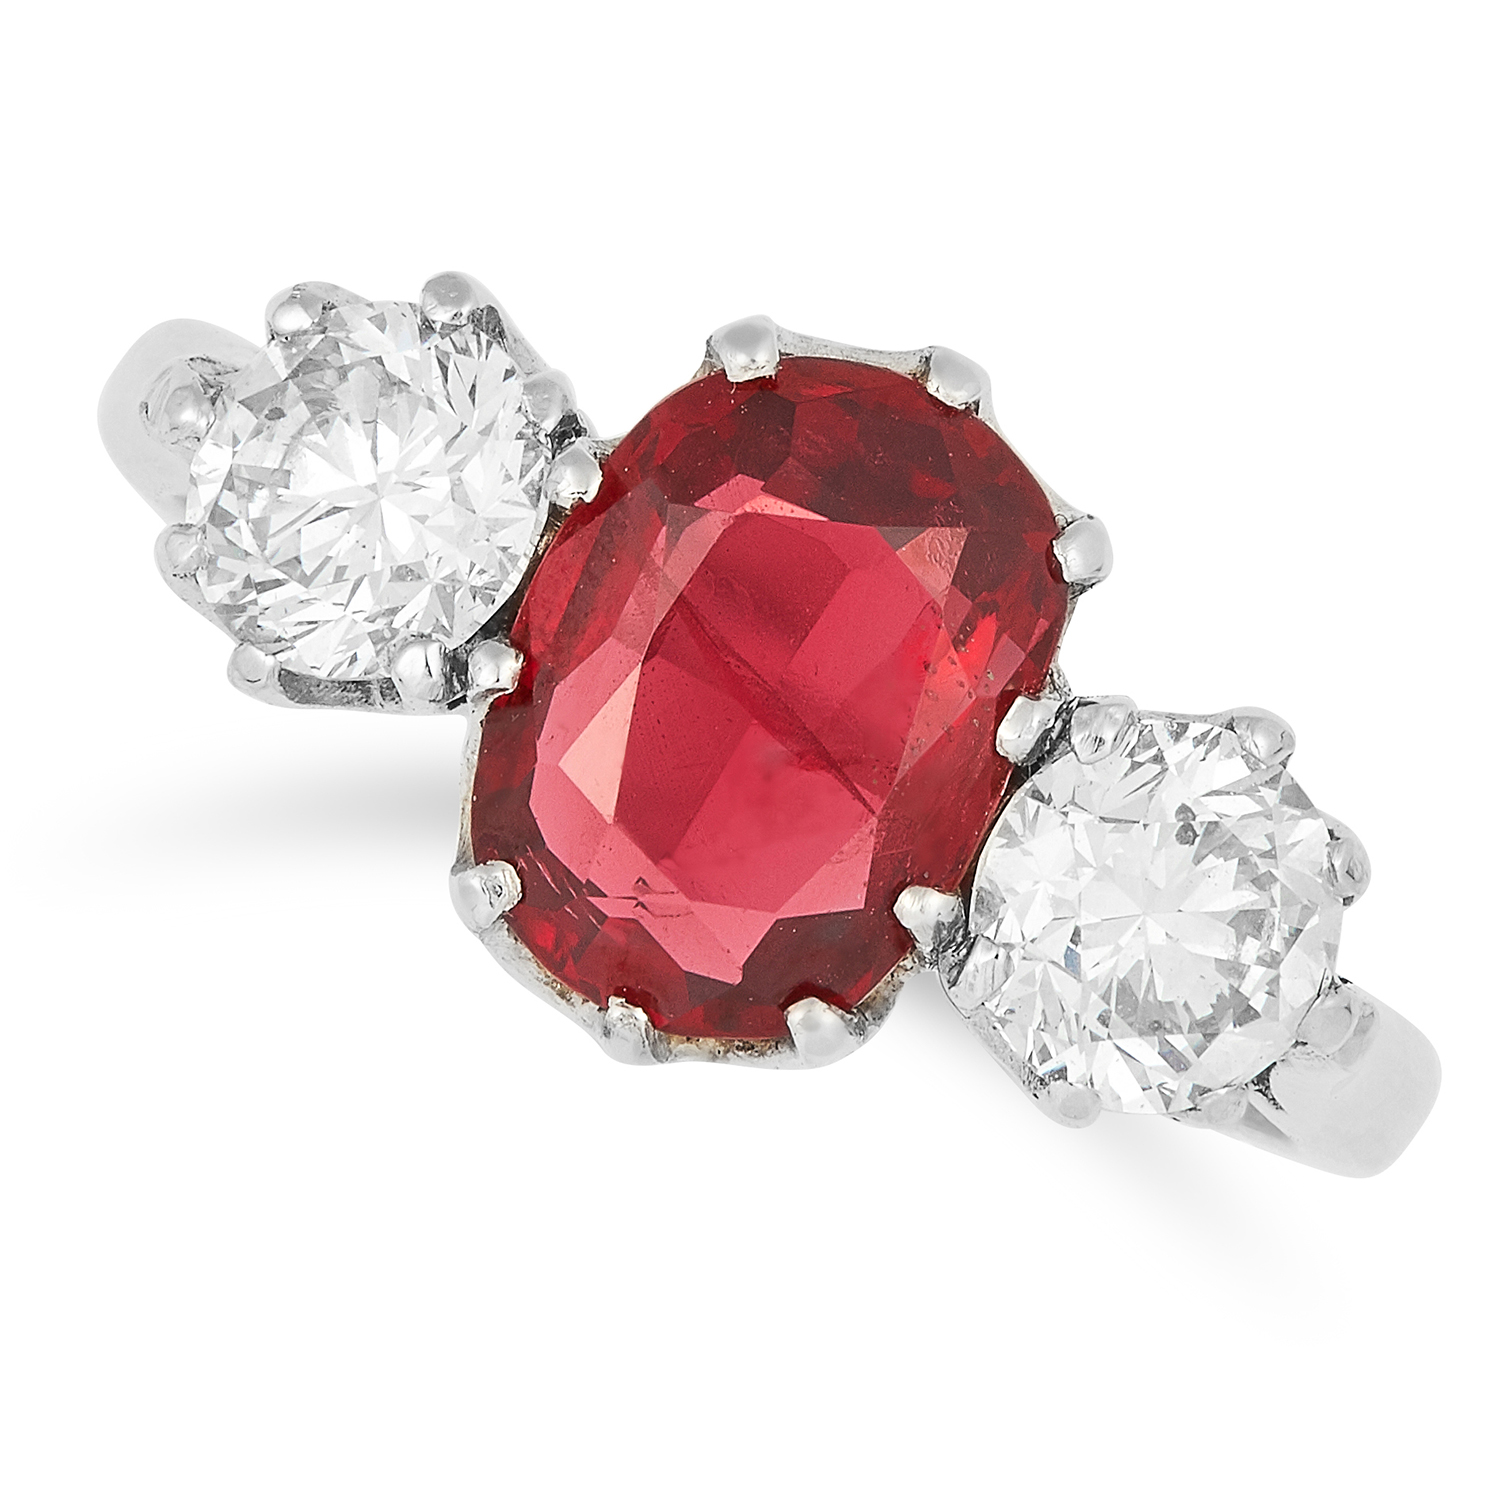 Los 6 - RED SPINEL AND DIAMOND RING set with an oval cut spinel of approximately 1.84 carats between two